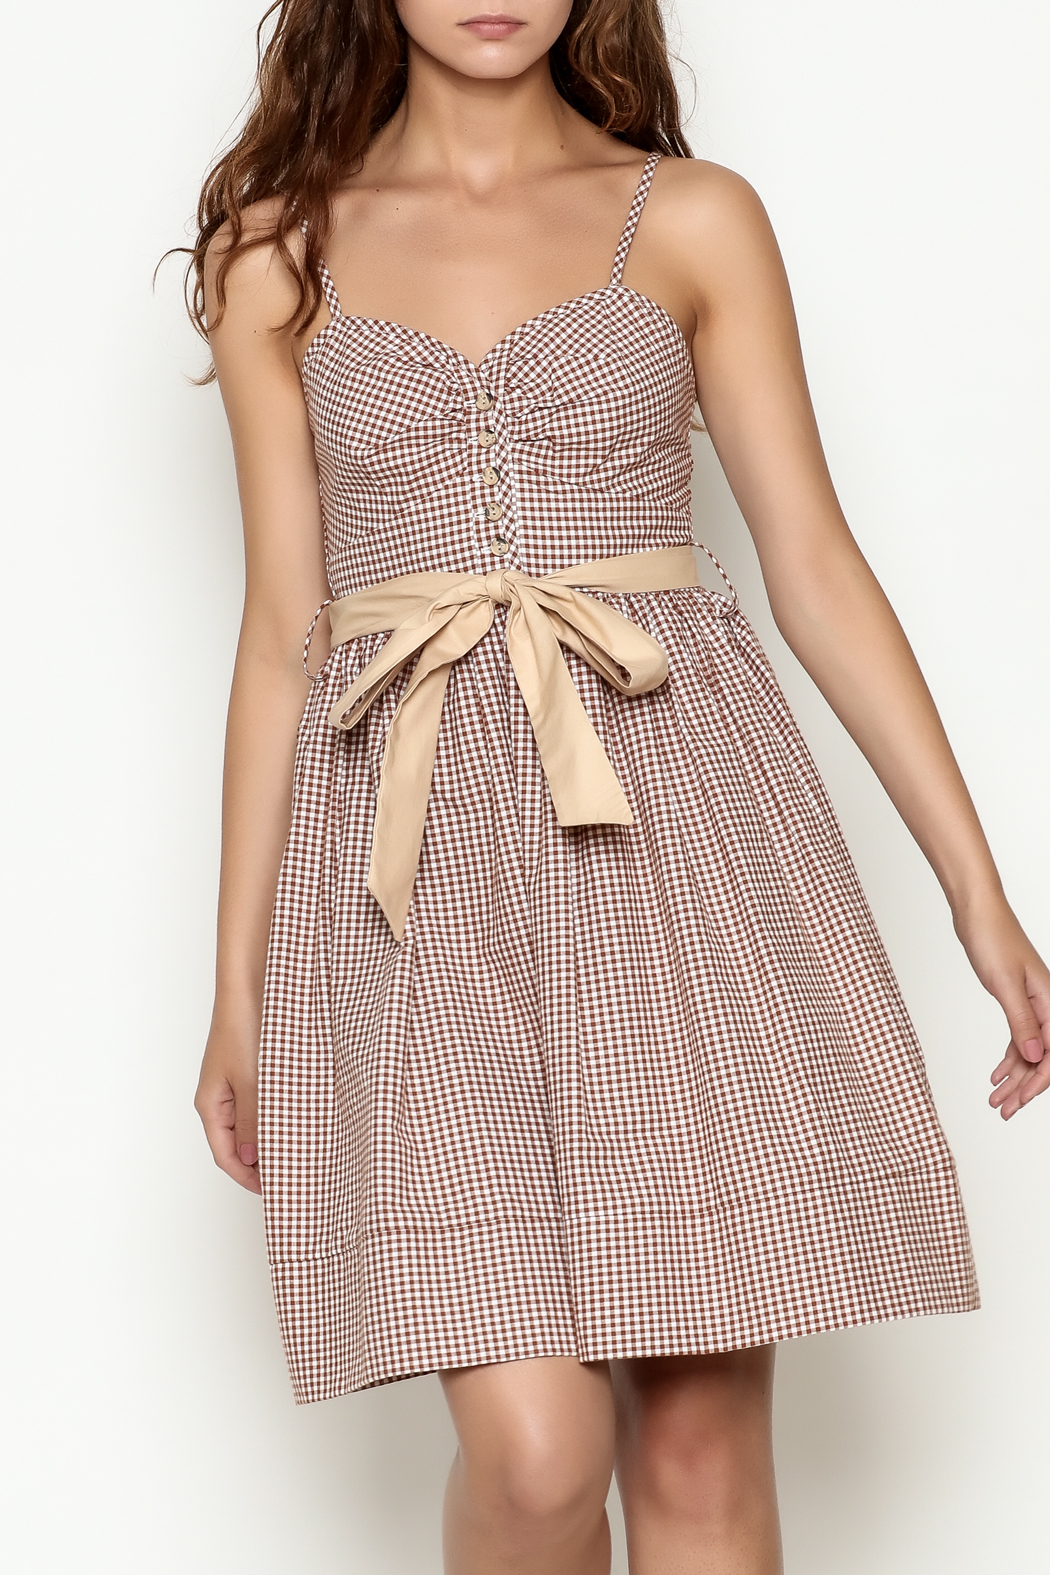 Roberta Oaks Gingham Print Dress - Front Cropped Image